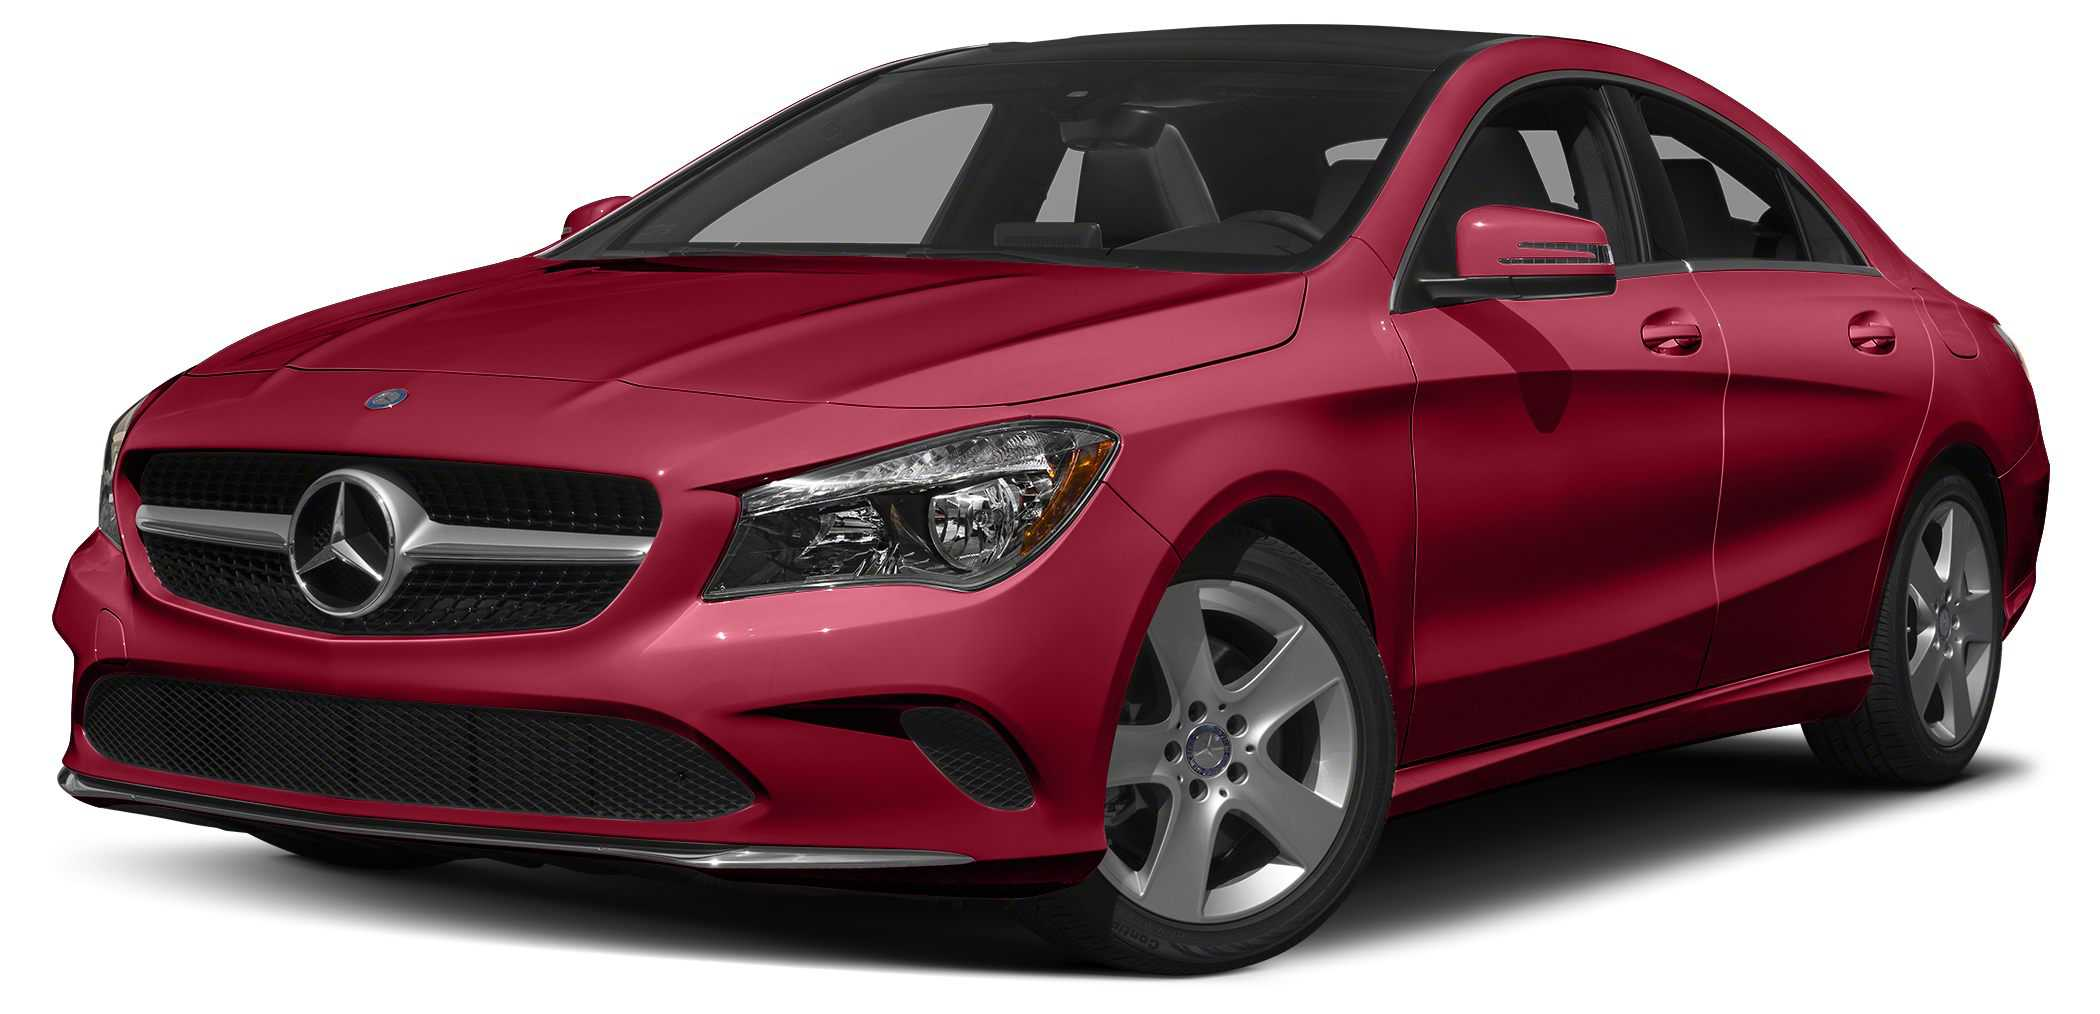 2017 mercedes benz cla 250 for sale in bayside ny for Mercedes benz bayside